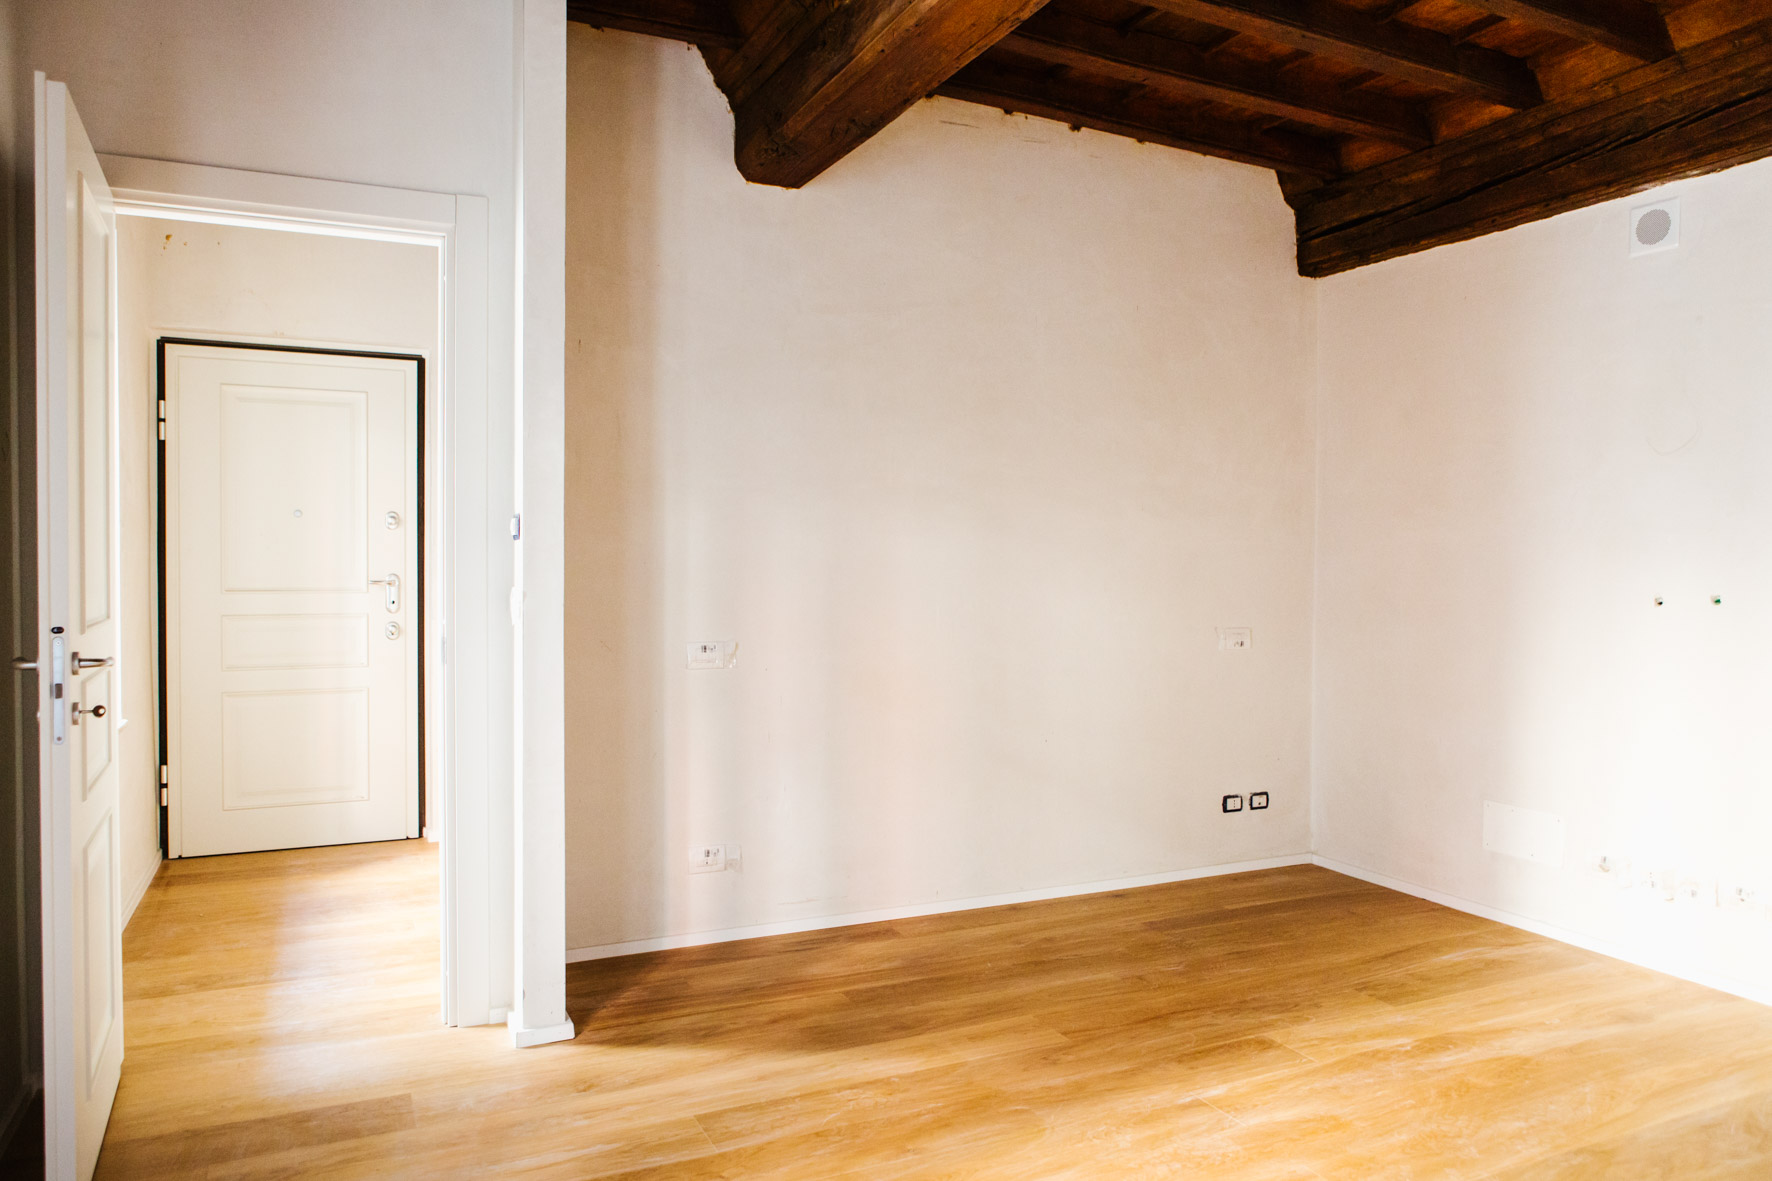 Additional photo for property listing at Modern and luminous apartment in center Piazza Savoia Torino, Turin 10122 Italia